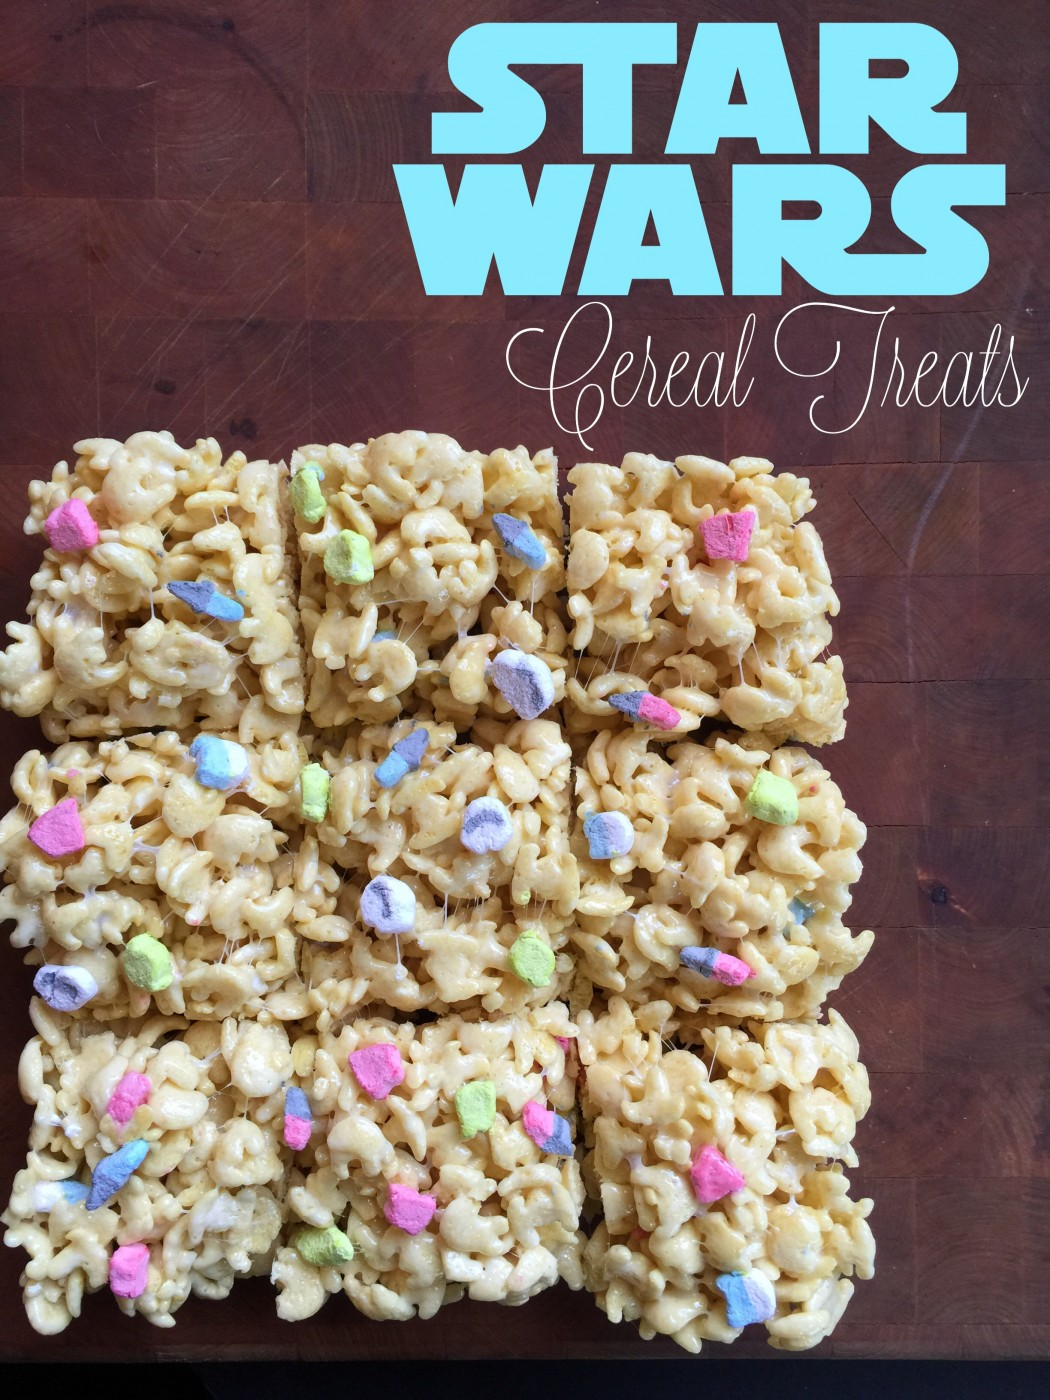 Star wars marshmallow cereal treat bars disney every day star wars marshmallow cereal treat bars ccuart Images